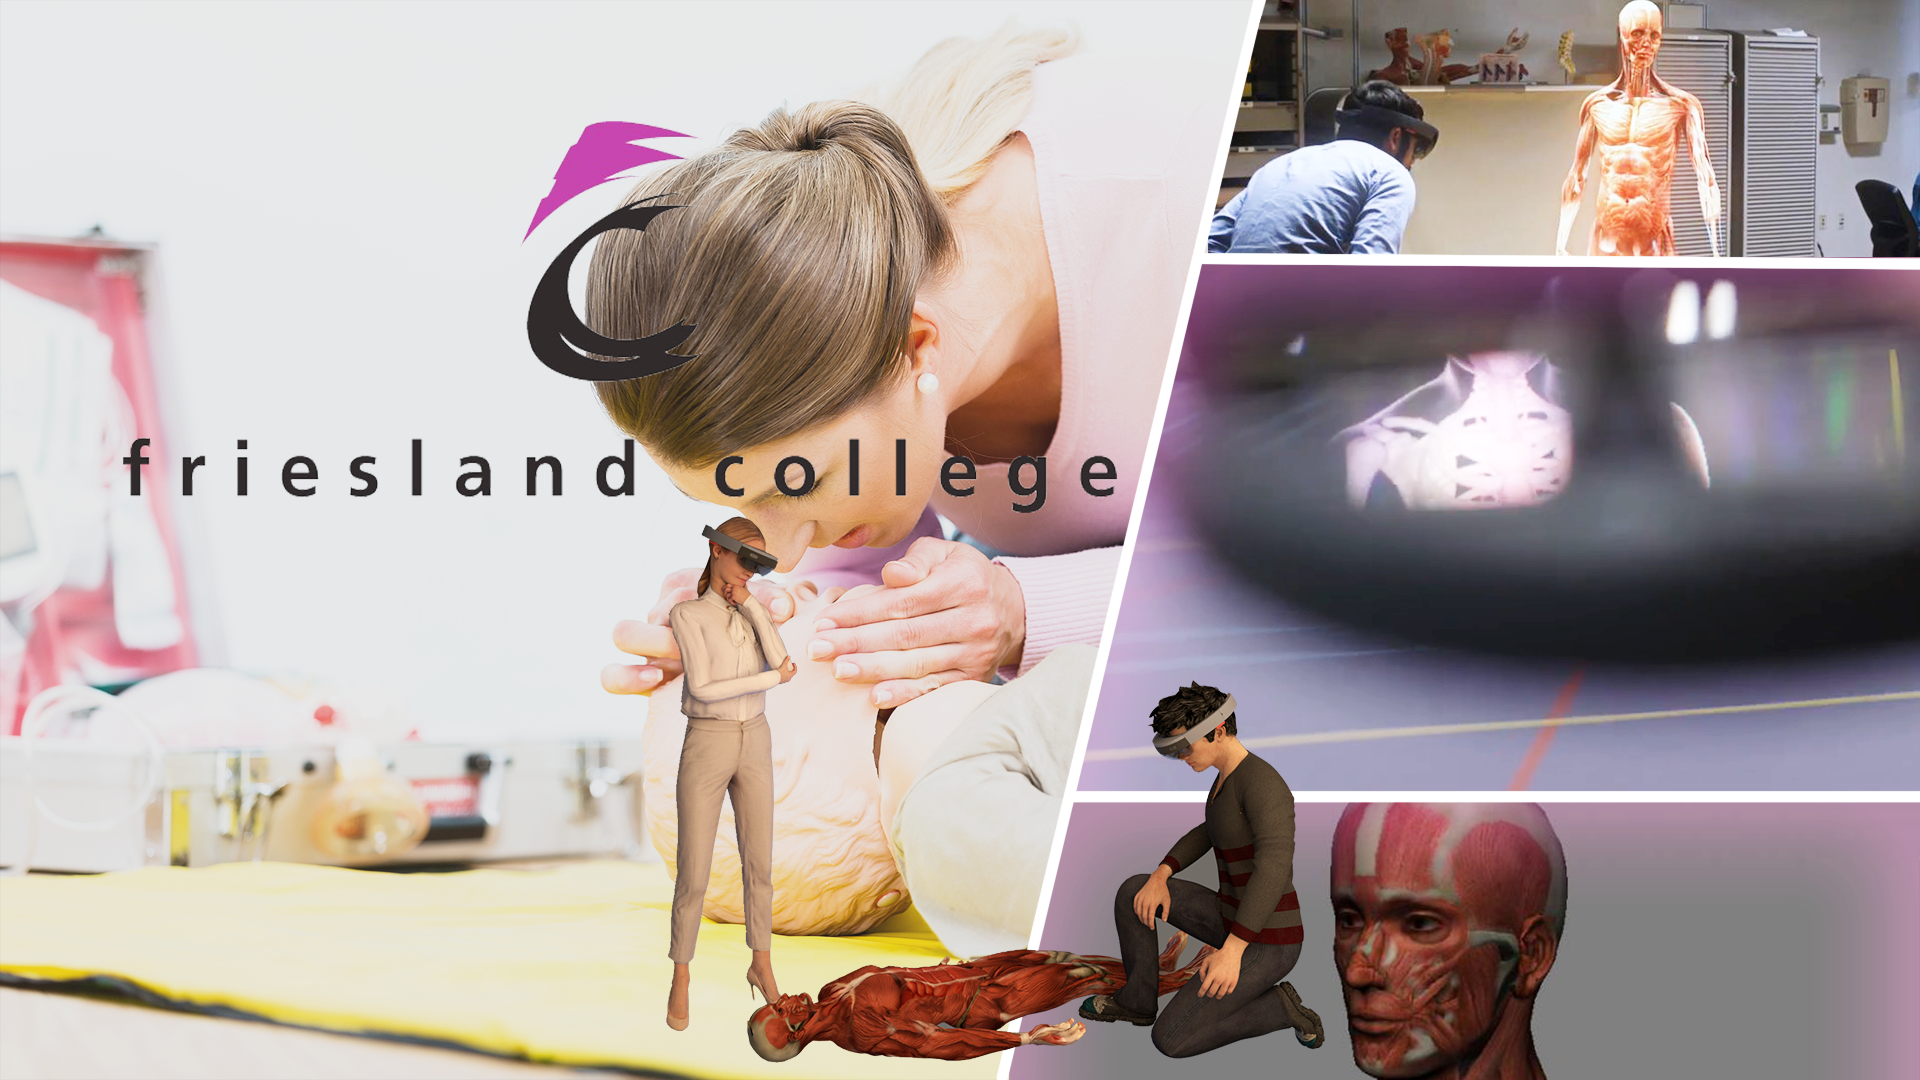 augmented reality cases (friesland college 1)